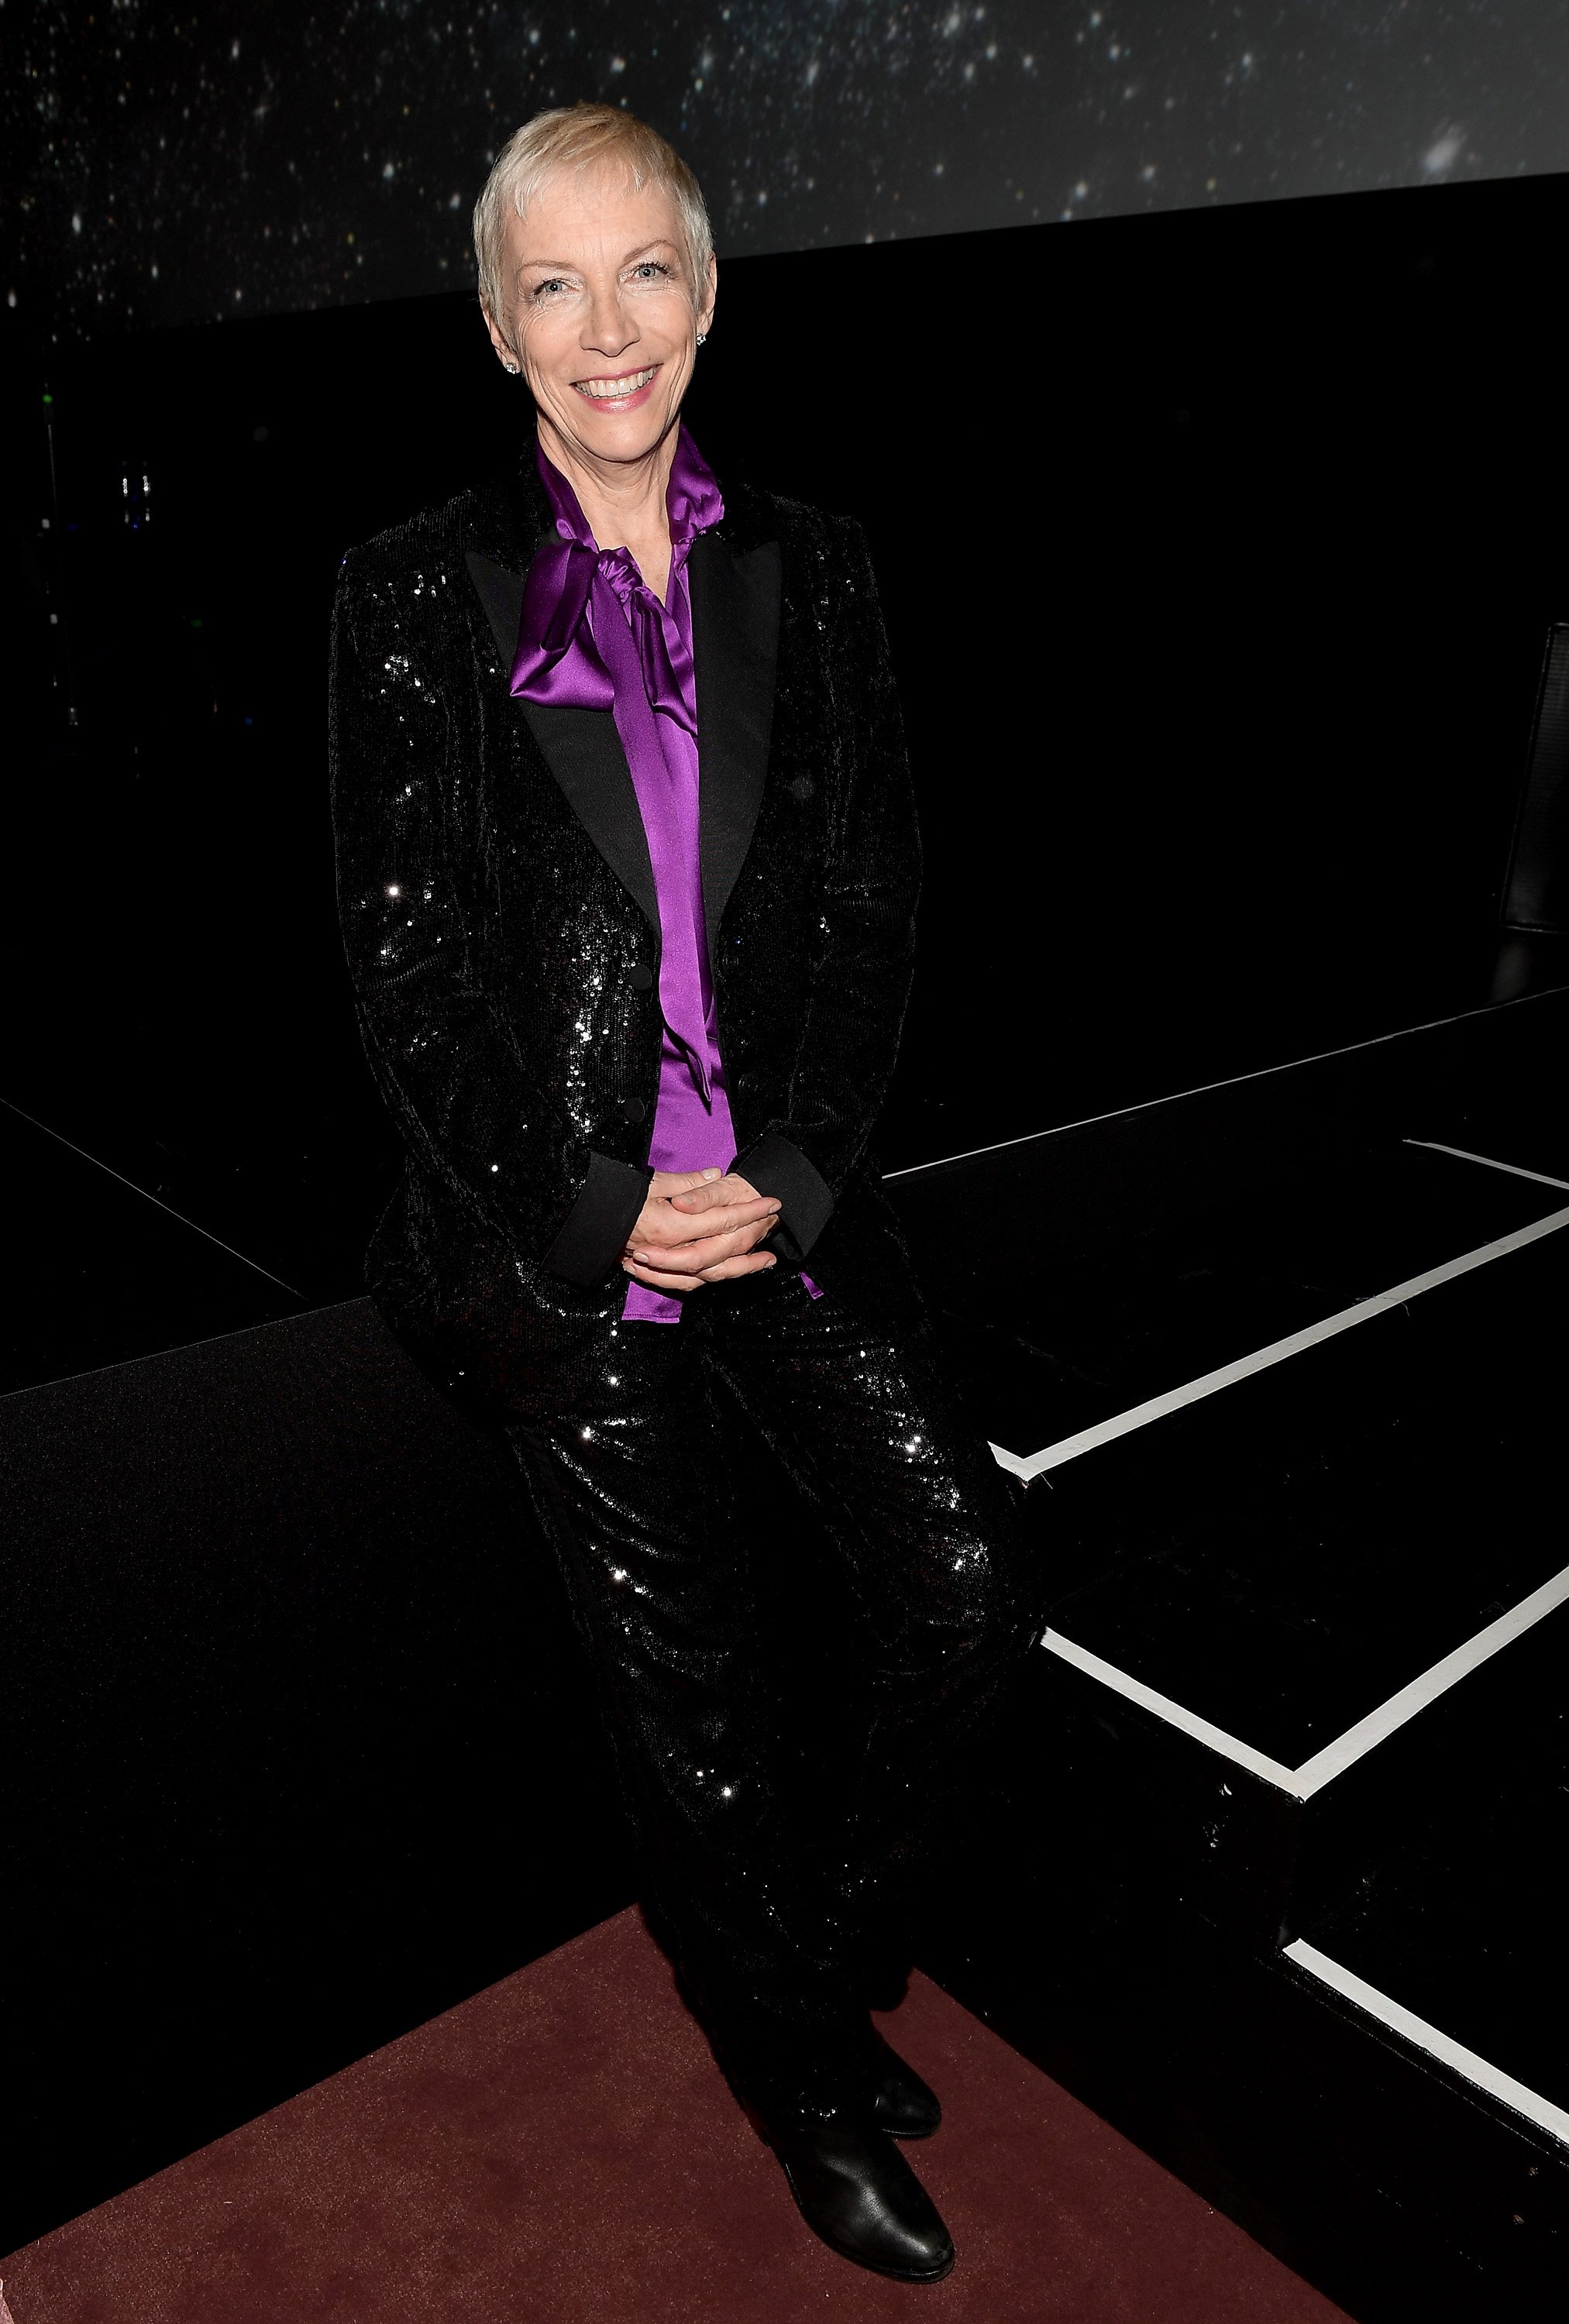 LOS ANGELES, CA - NOVEMBER 04: Musician Annie Lennox, wearing Gucci, attends the 2017 LACMA Art + Film Gala Honoring Mark Bradford and George Lucas presented by Gucci at LACMA on November 4, 2017 in Los Angeles, California. (Photo by Matt Winkelmeyer/Getty Images for LACMA)